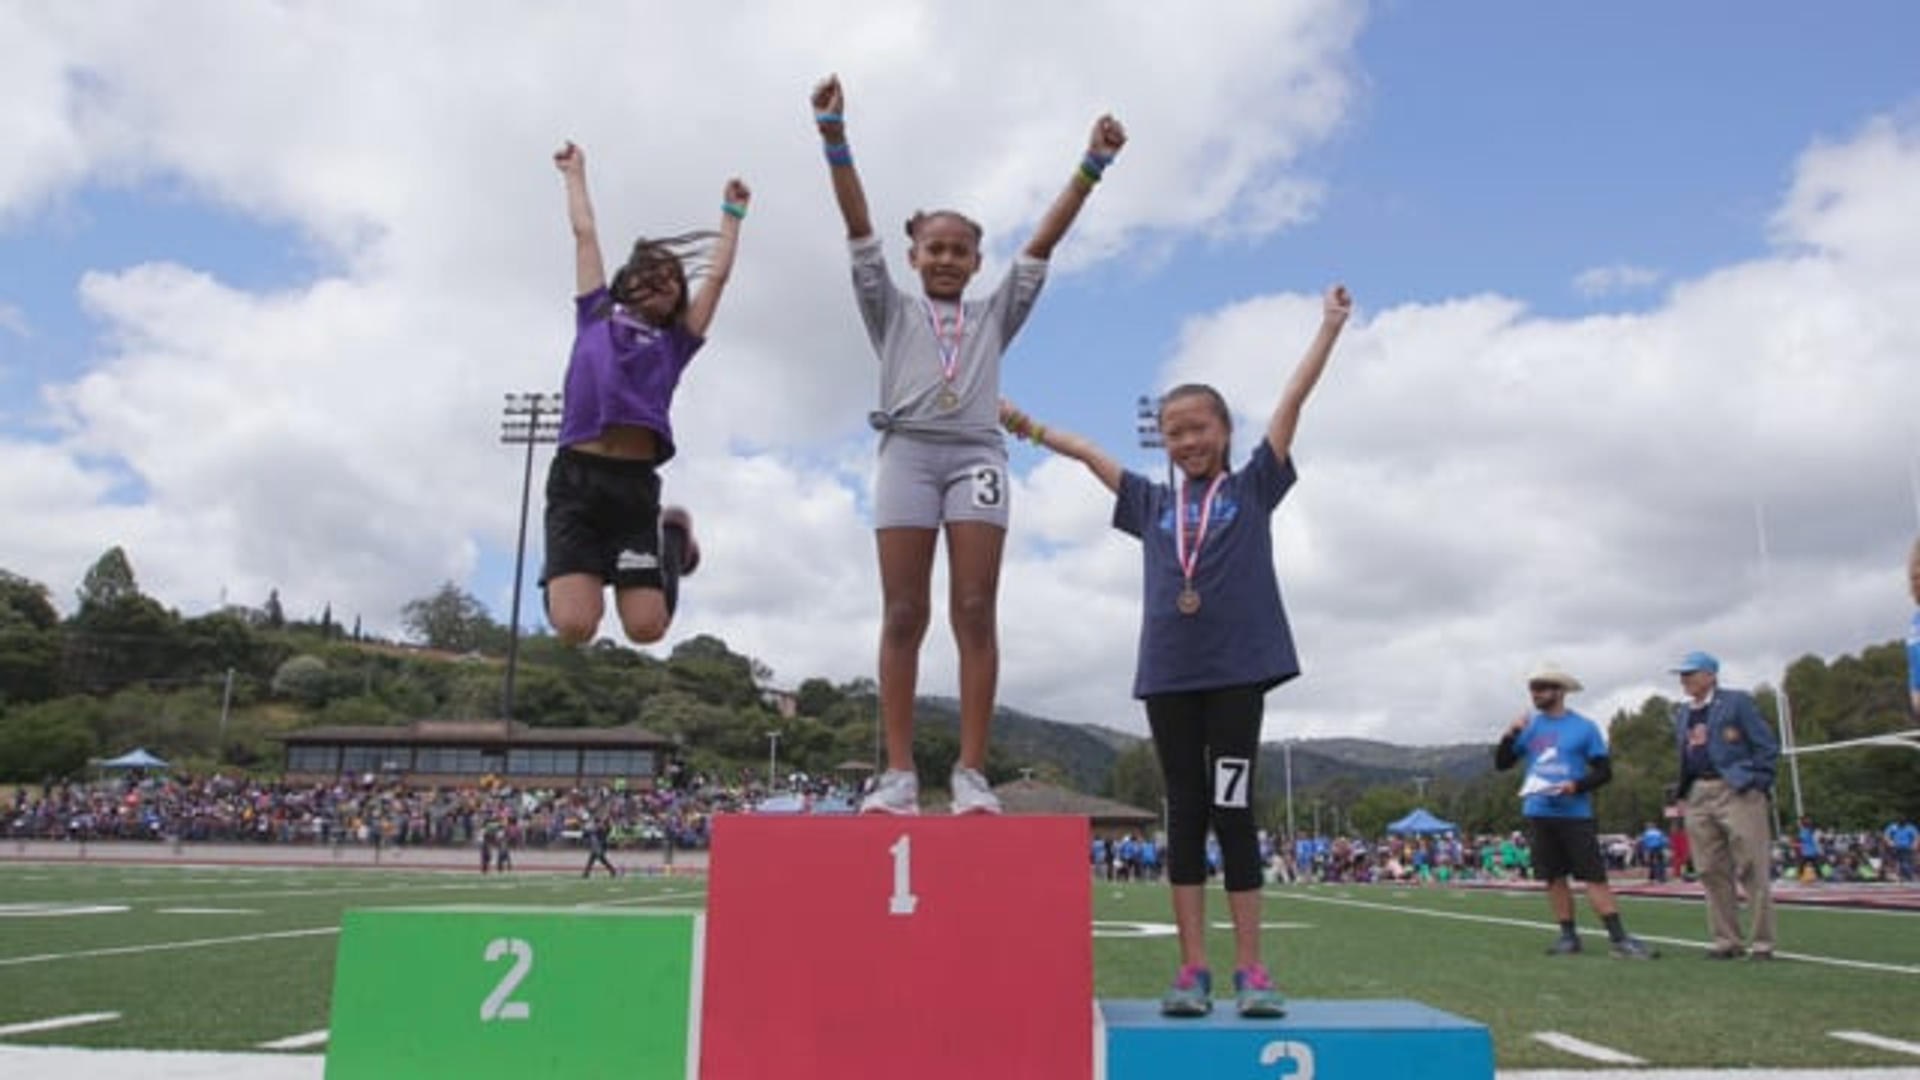 Bullis Charter School hosts abi-annual Junior Olympics for K-8 charter school students and families from across Santa Clara County to celebrate education and community.